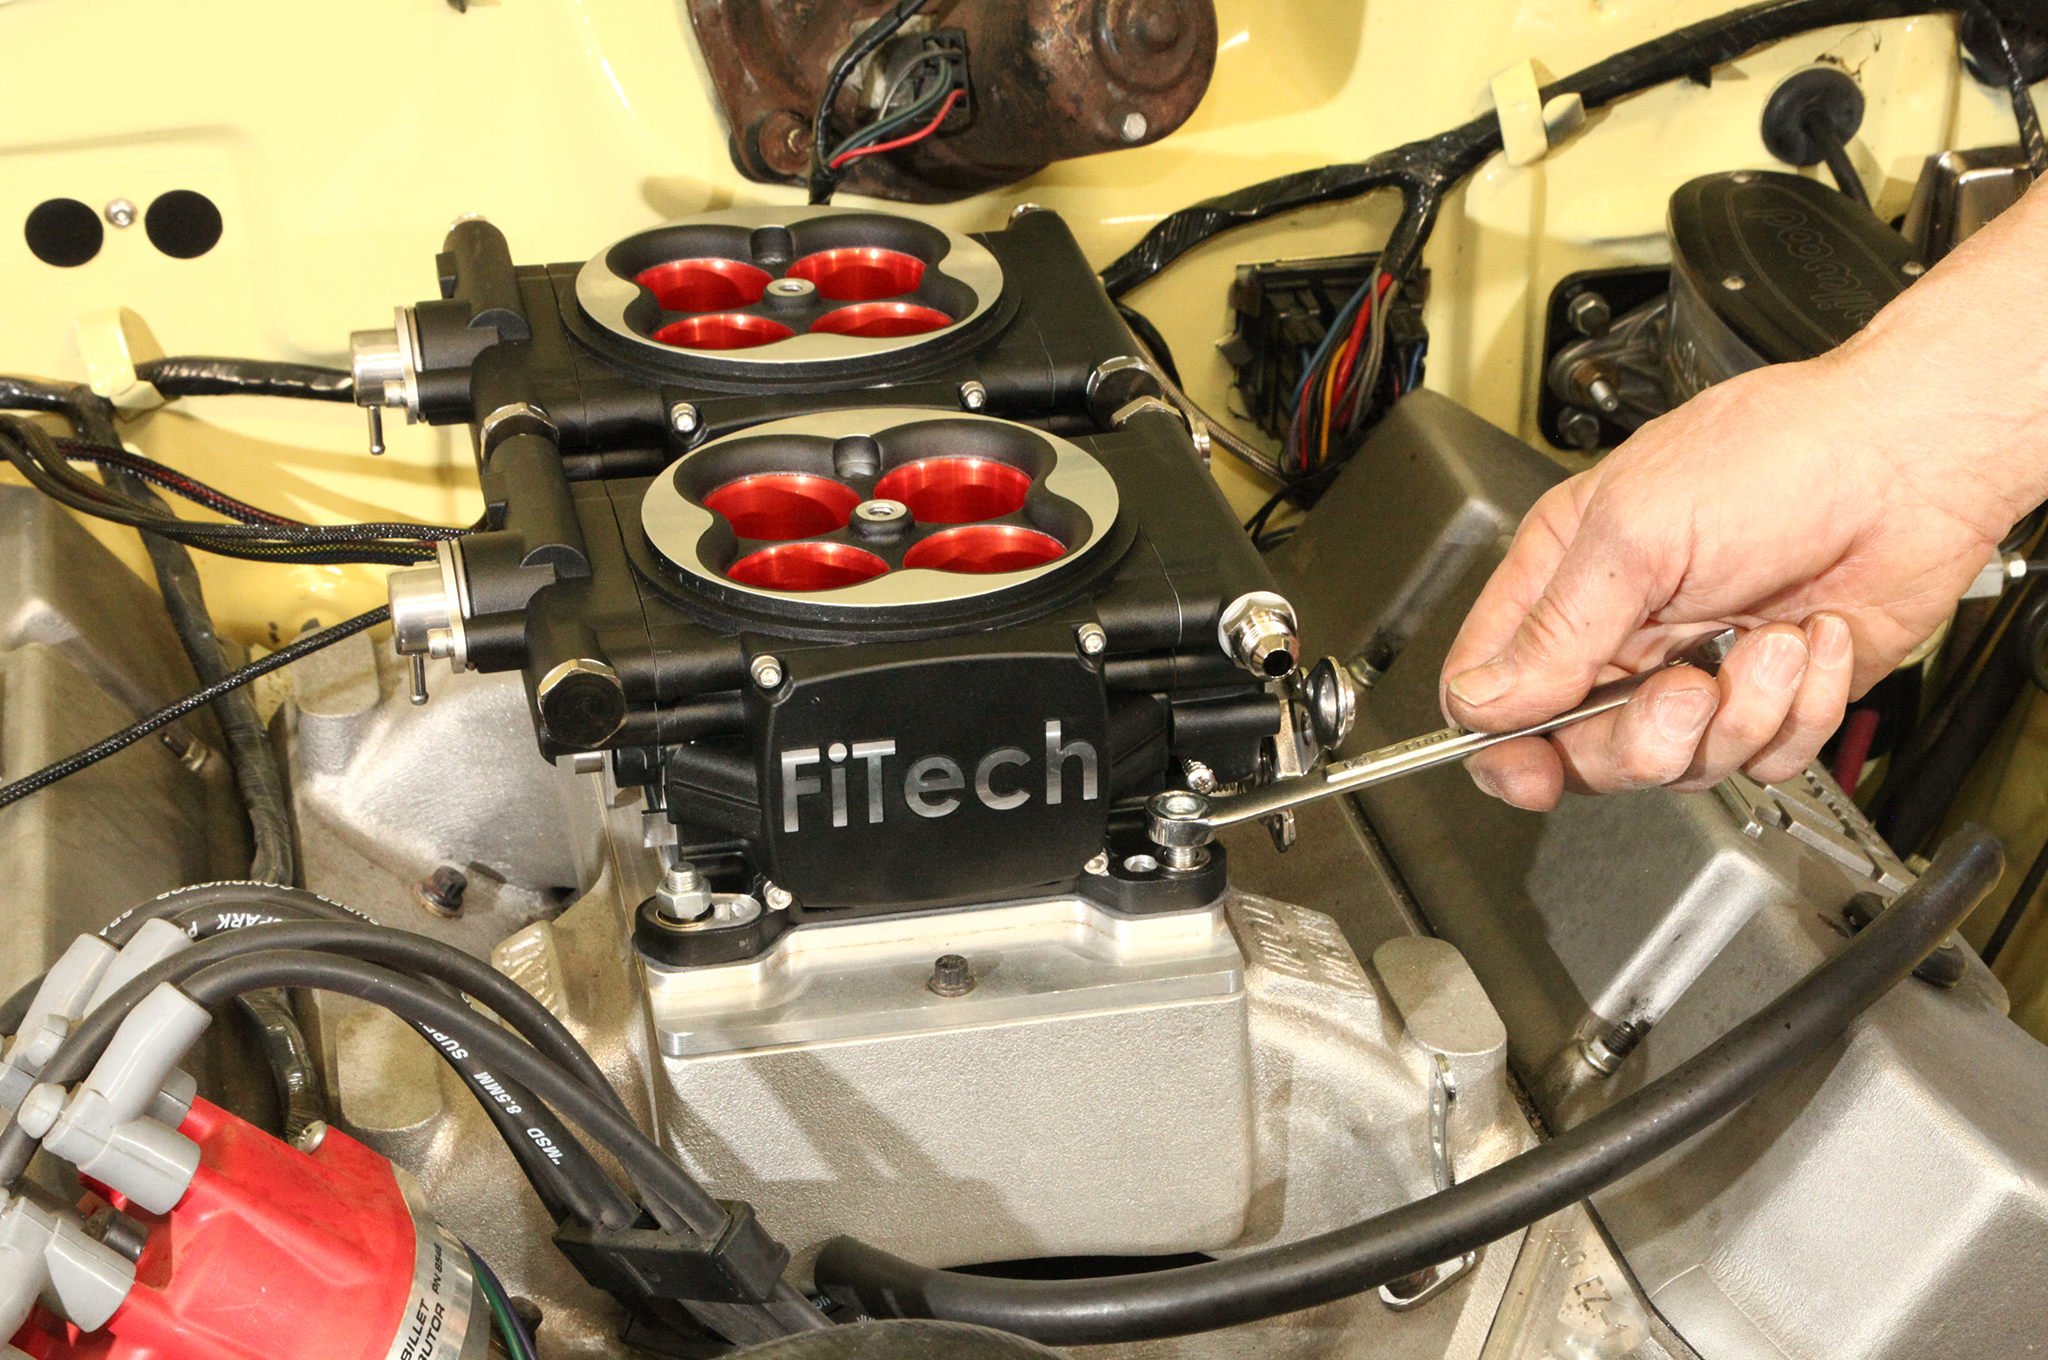 Fitech Reinvents Efi How They Do It Better Amp Cheaper